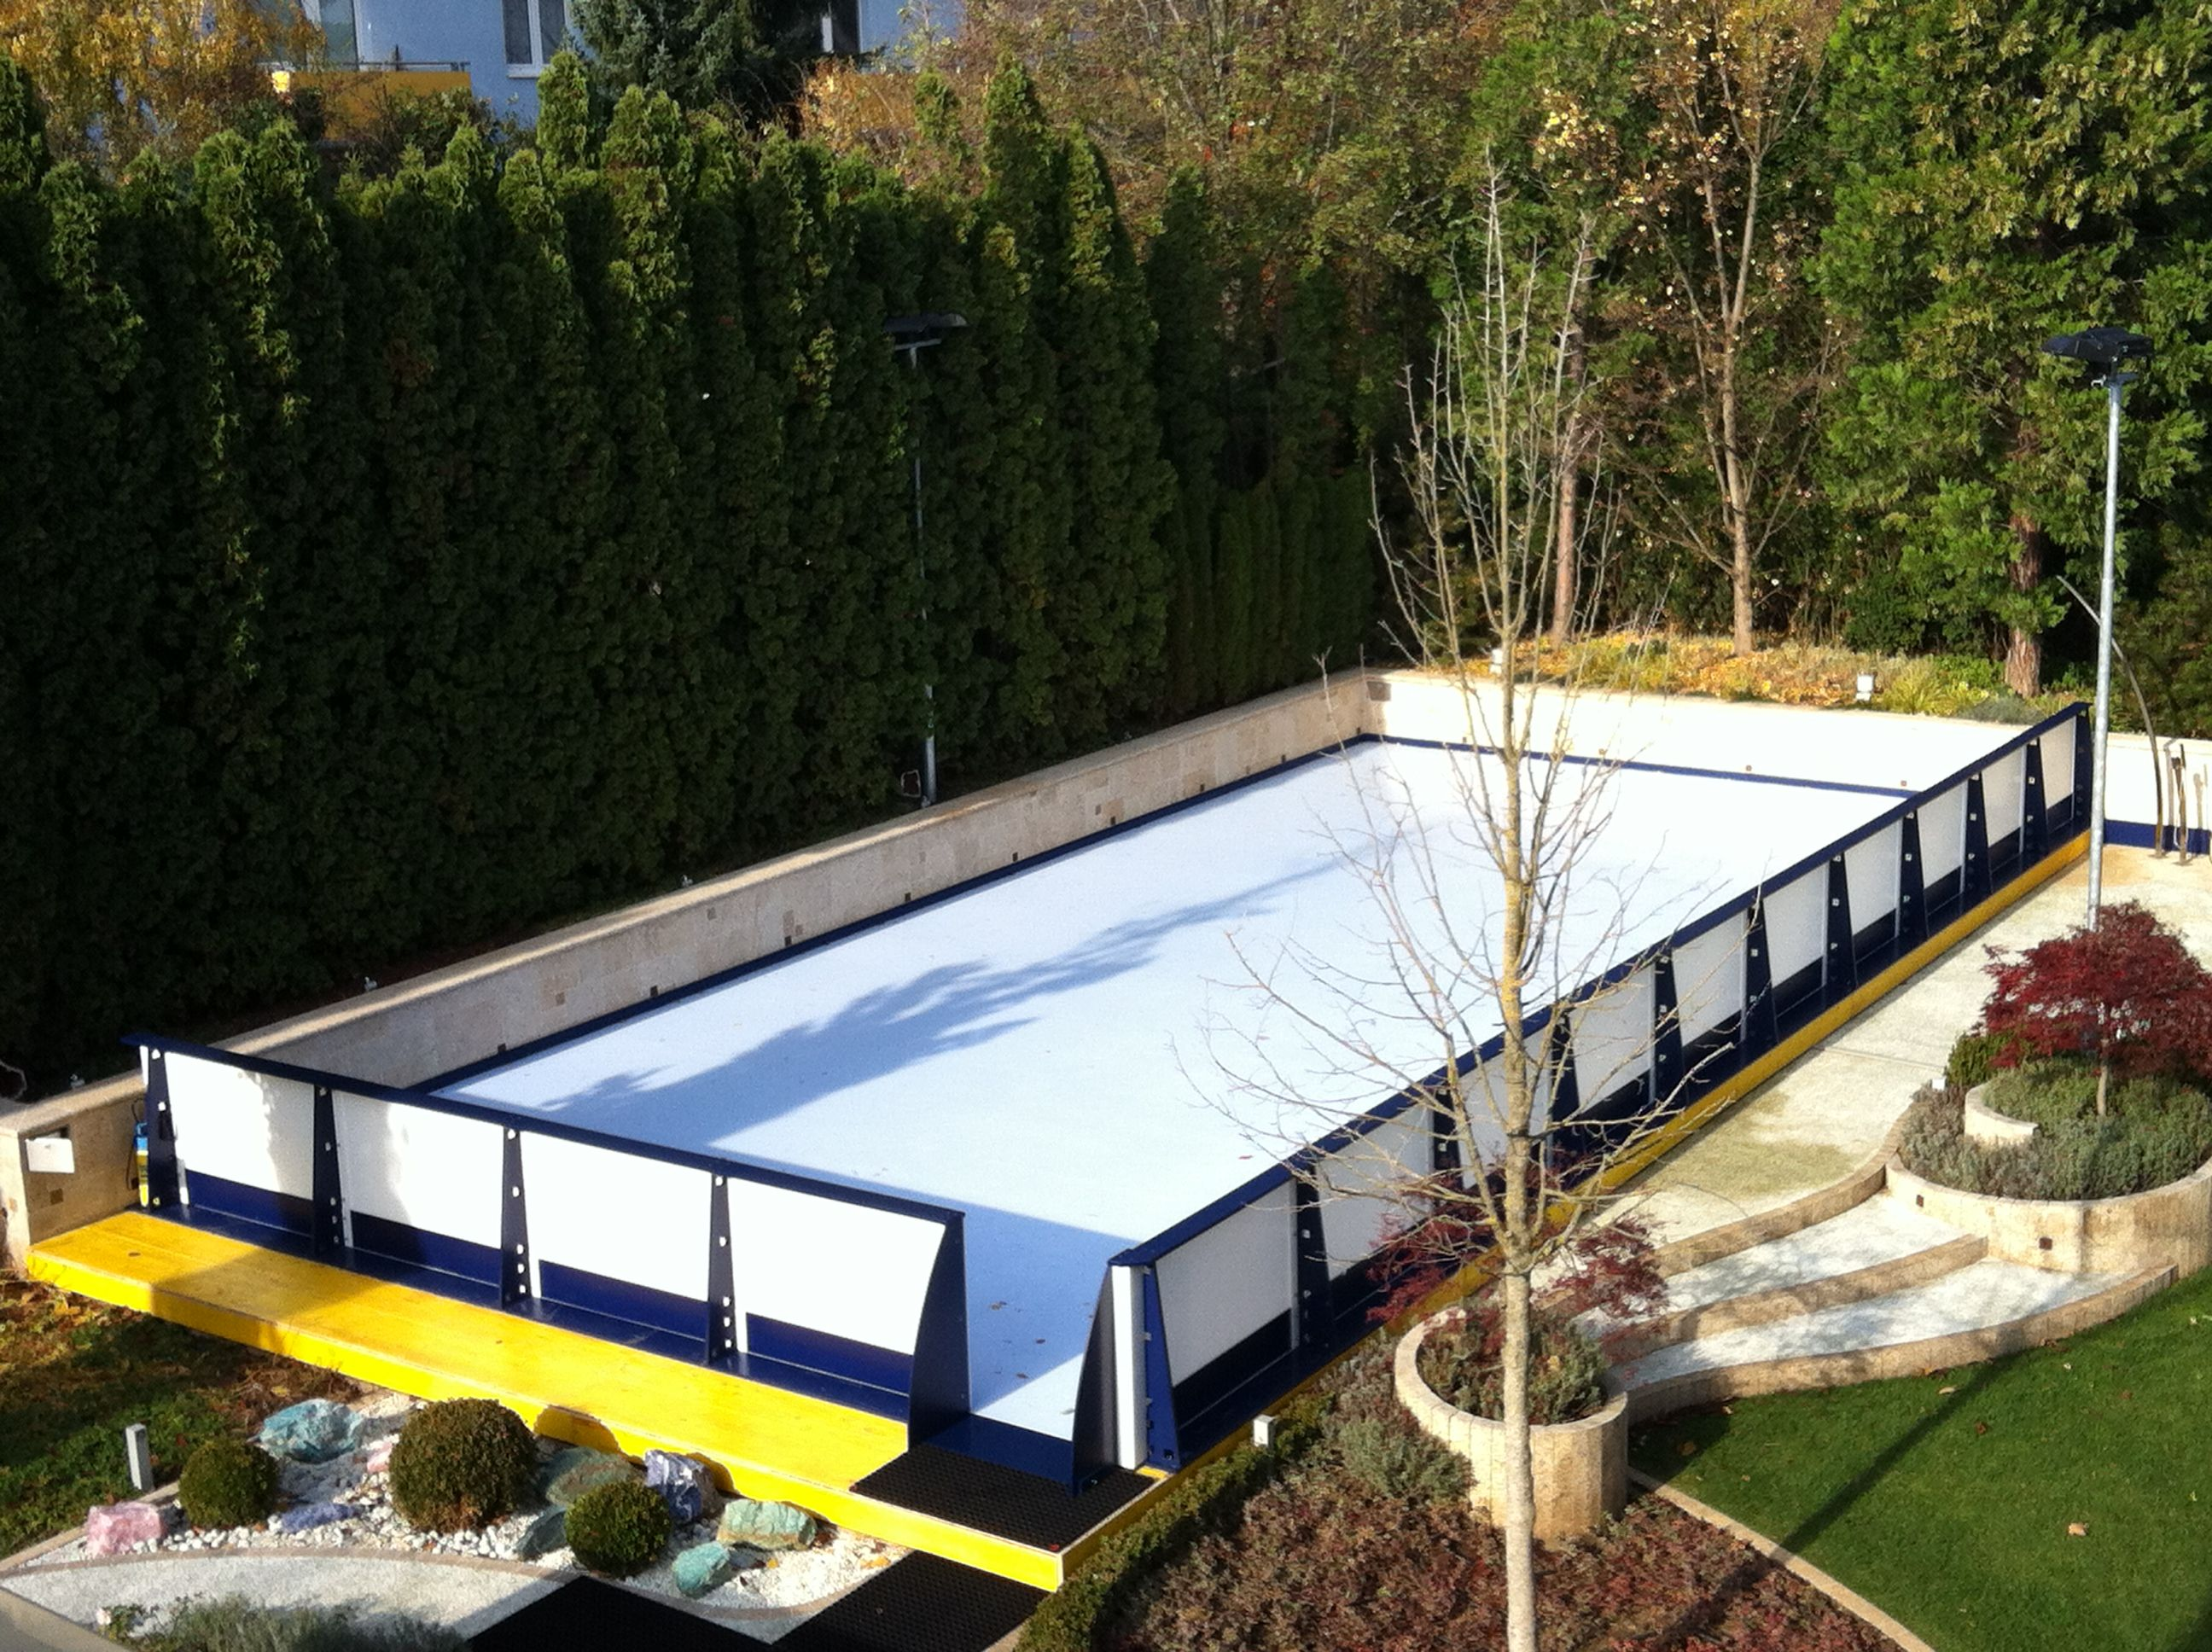 backyard synthetic ice rink built over a pool in vienna home